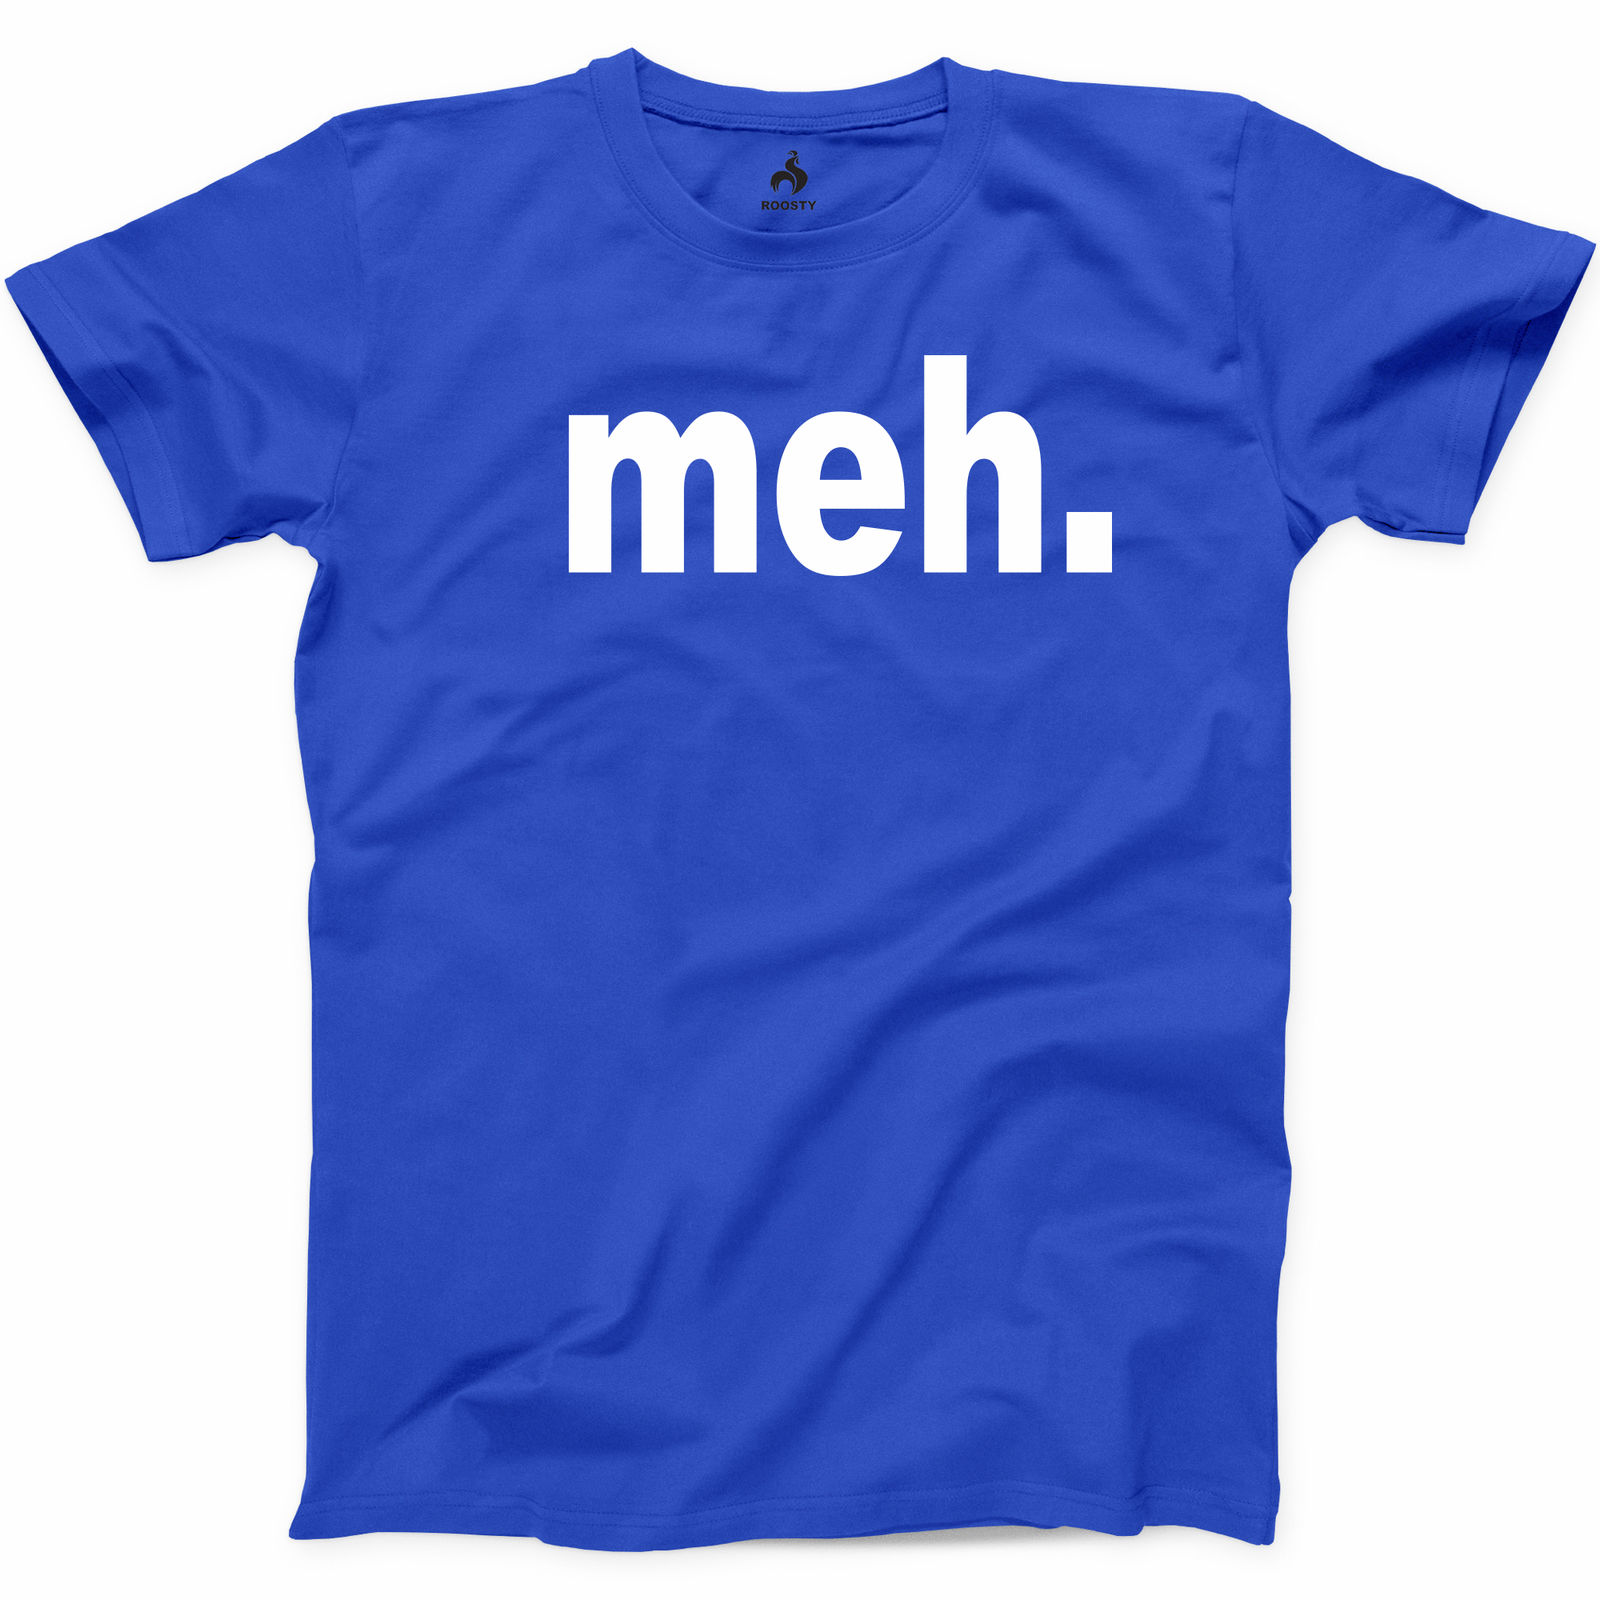 Meh T Shirt Funny TV Show Humor Gamer Geek Dont Care Gift Unisex Tee S-3XL